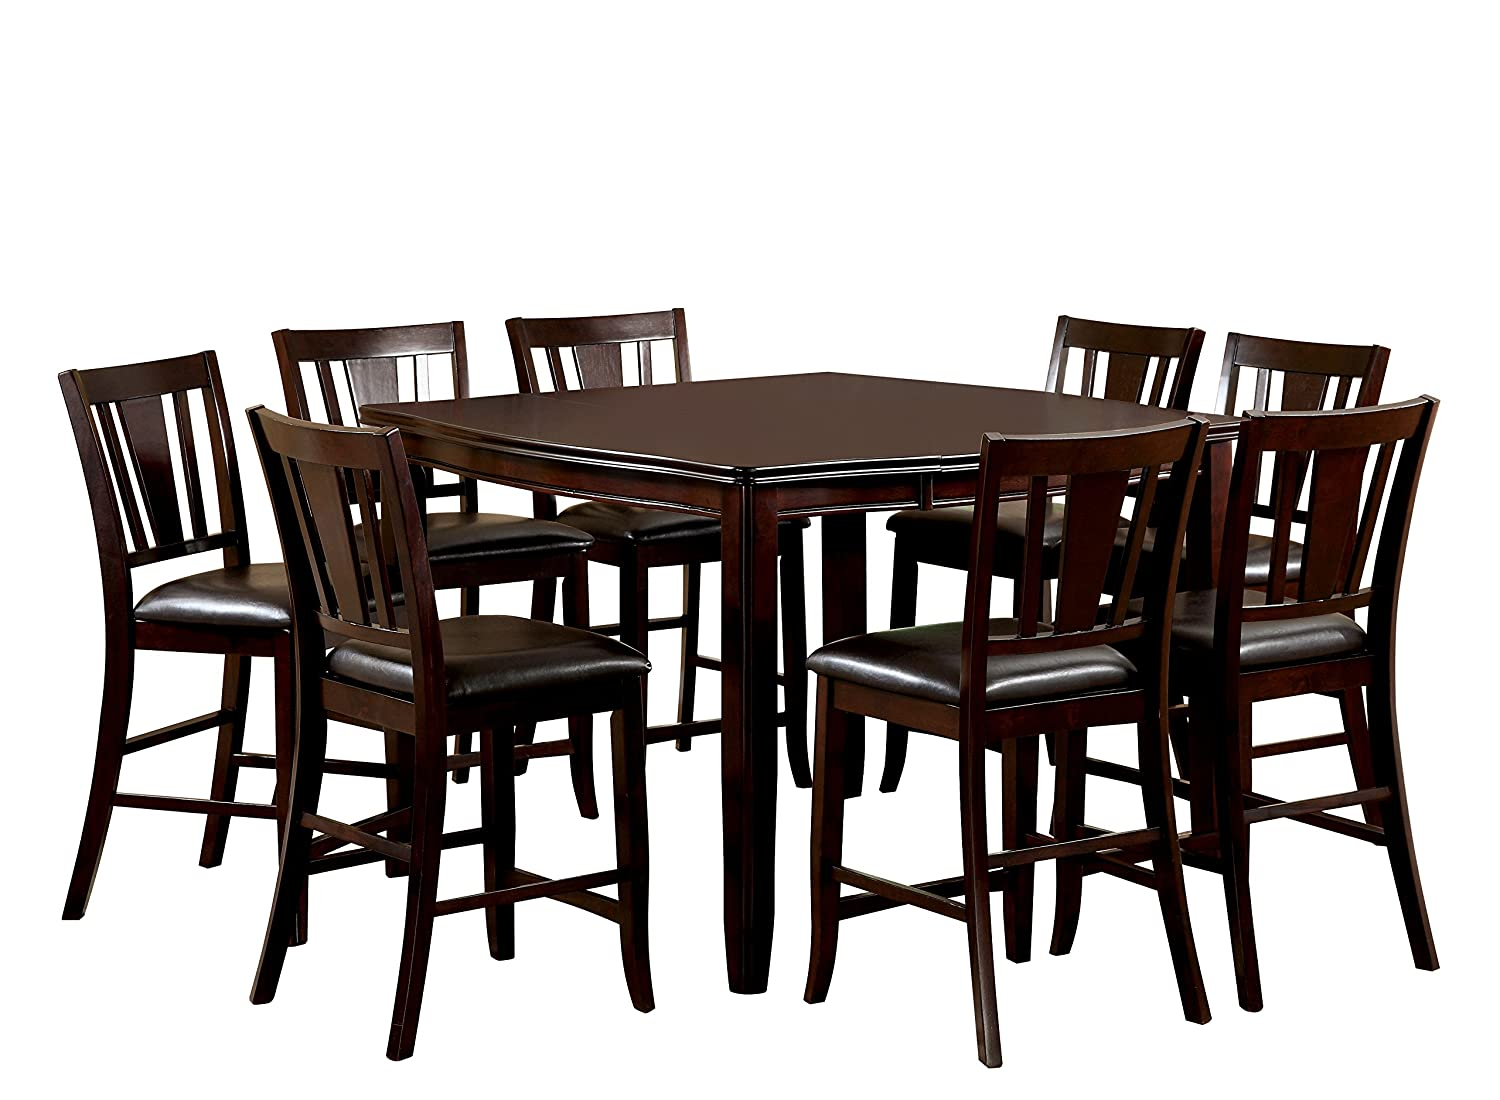 Furniture of america frederick 9 piece square counter for Kitchen set 008 26